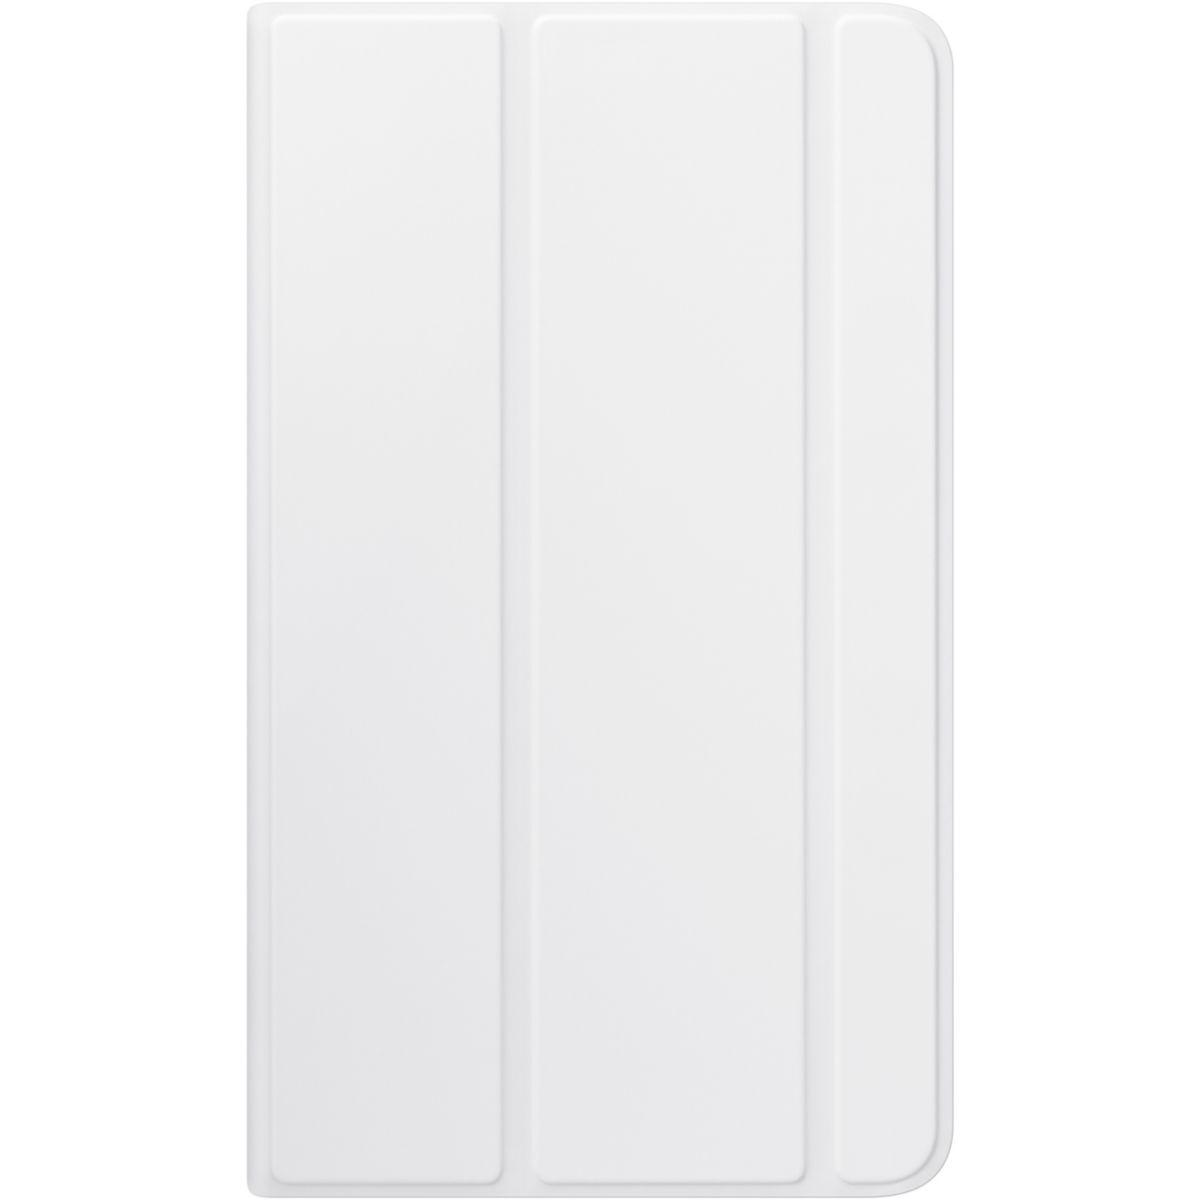 Etui samsung book cover tab a 7'' blanc - 20% de remise immédiate avec le code : cool20 (photo)